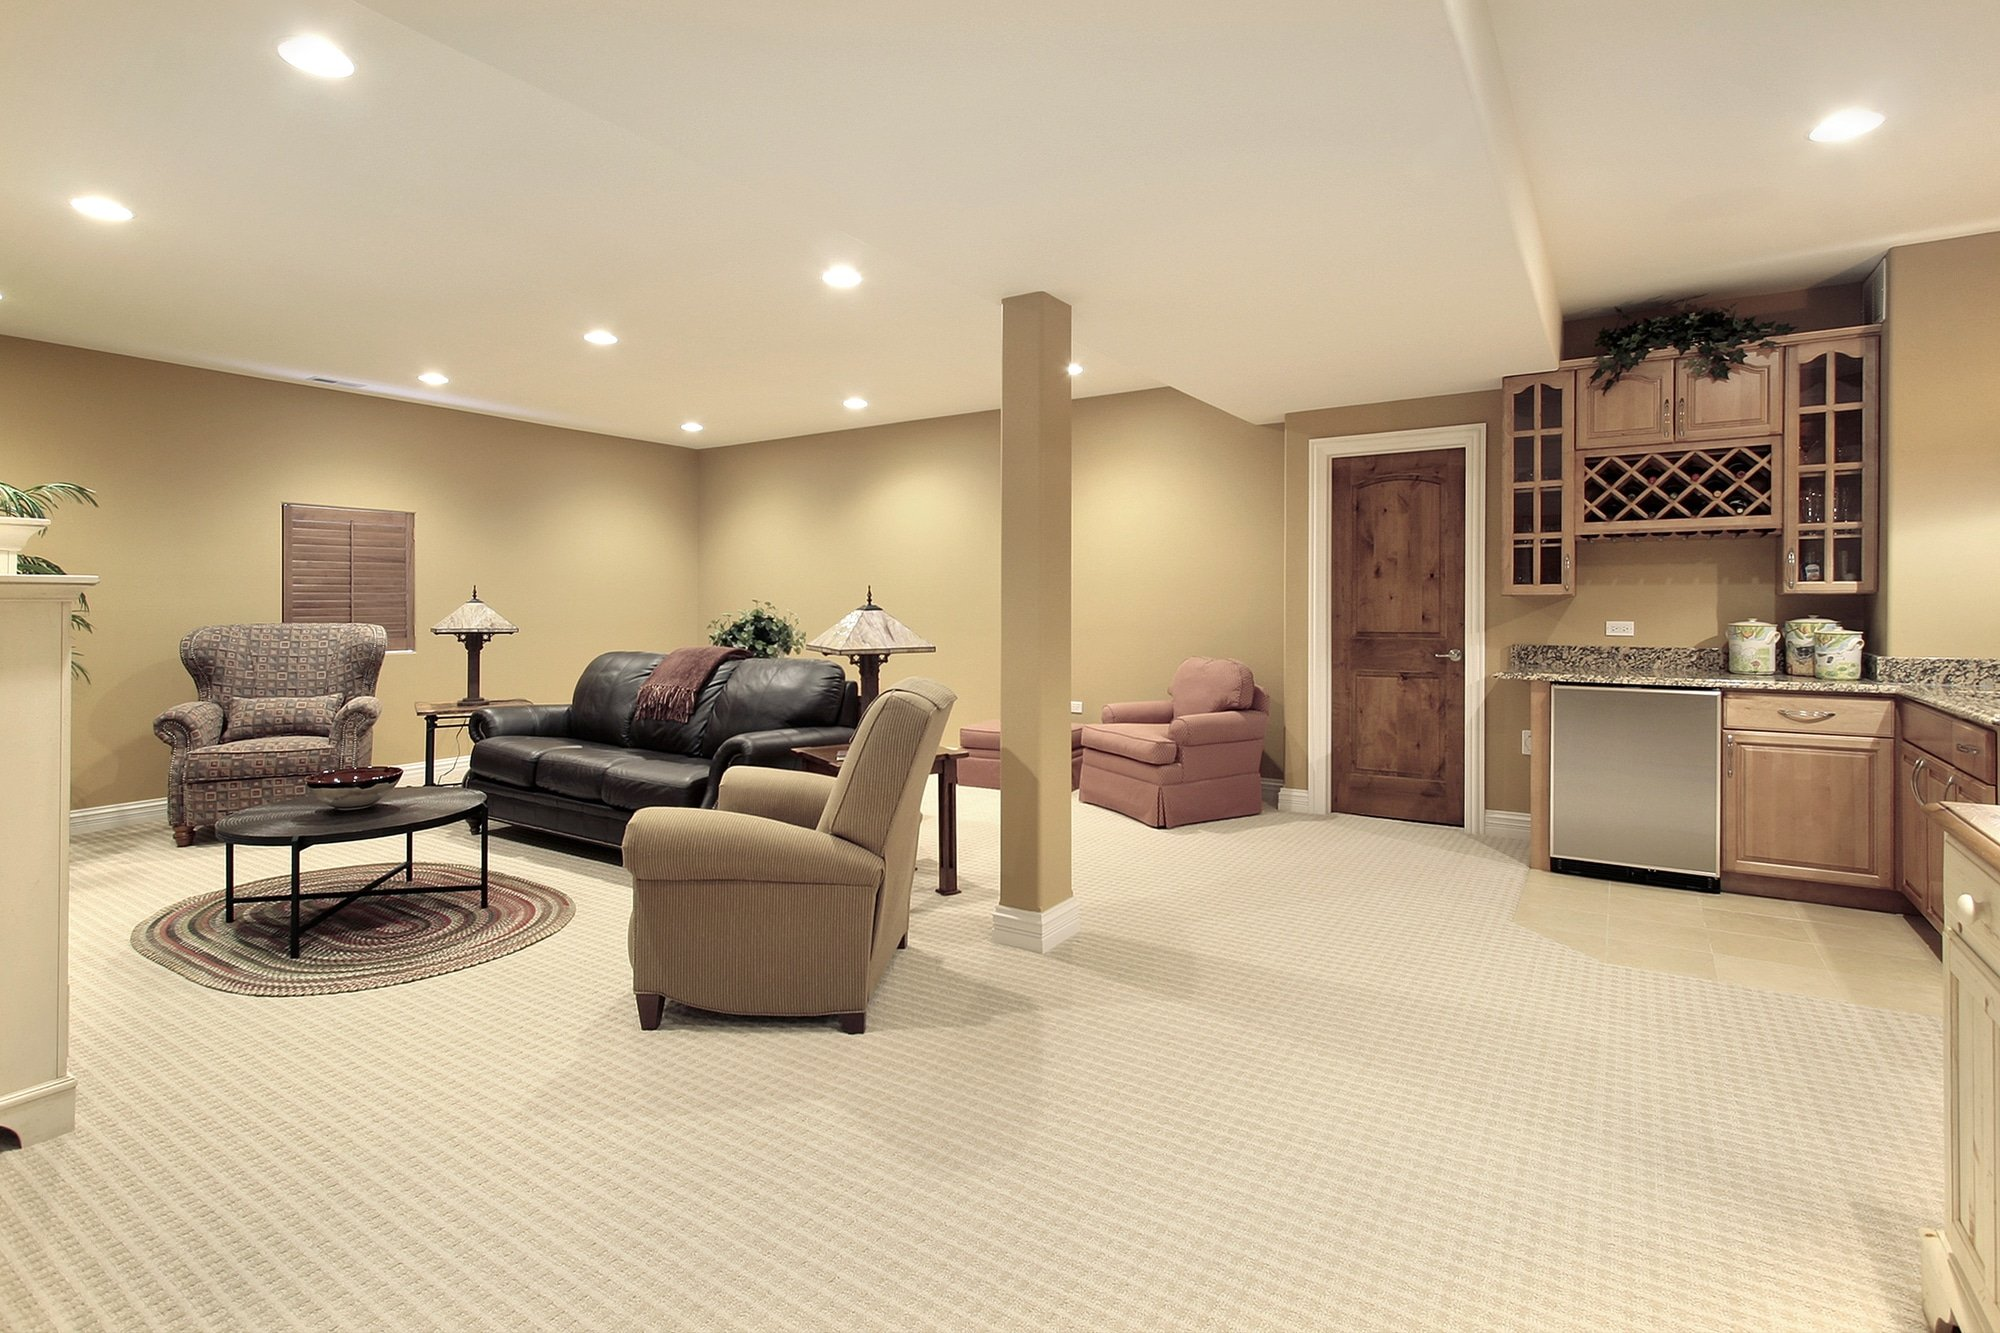 Basement With Kitchen Area